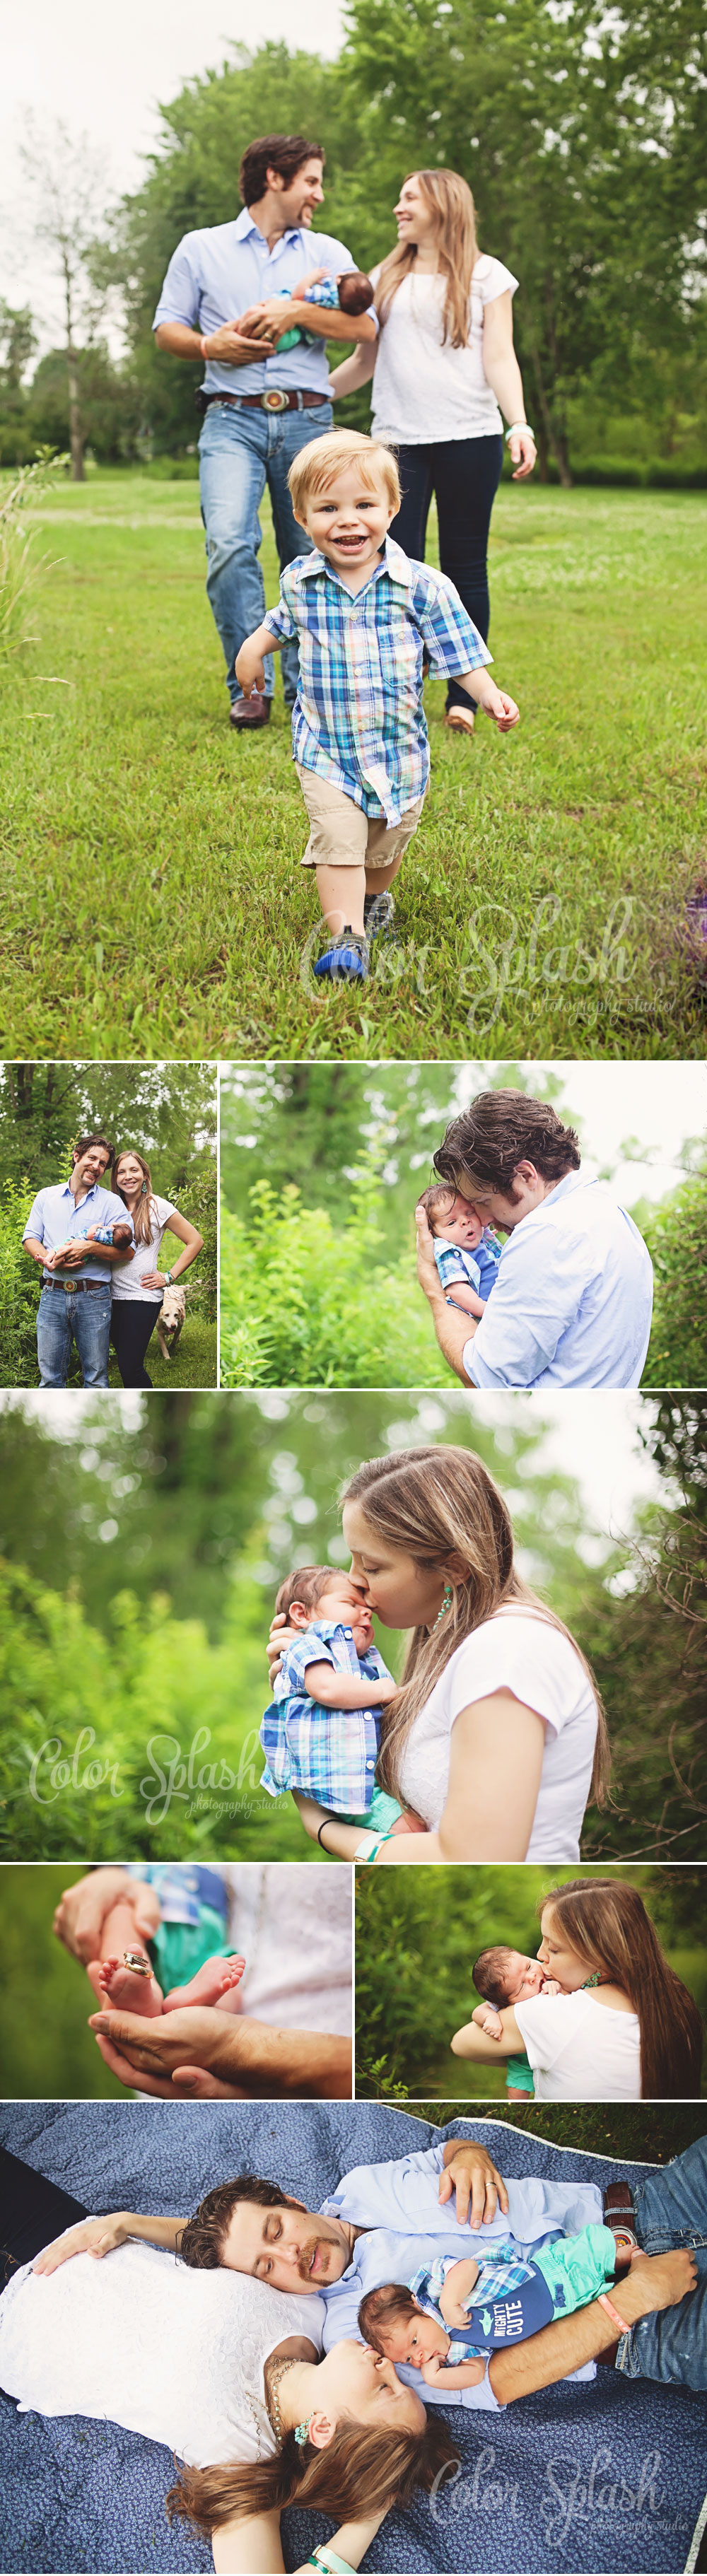 Color Splash Studio | Kalamazoo Newborn Photographer